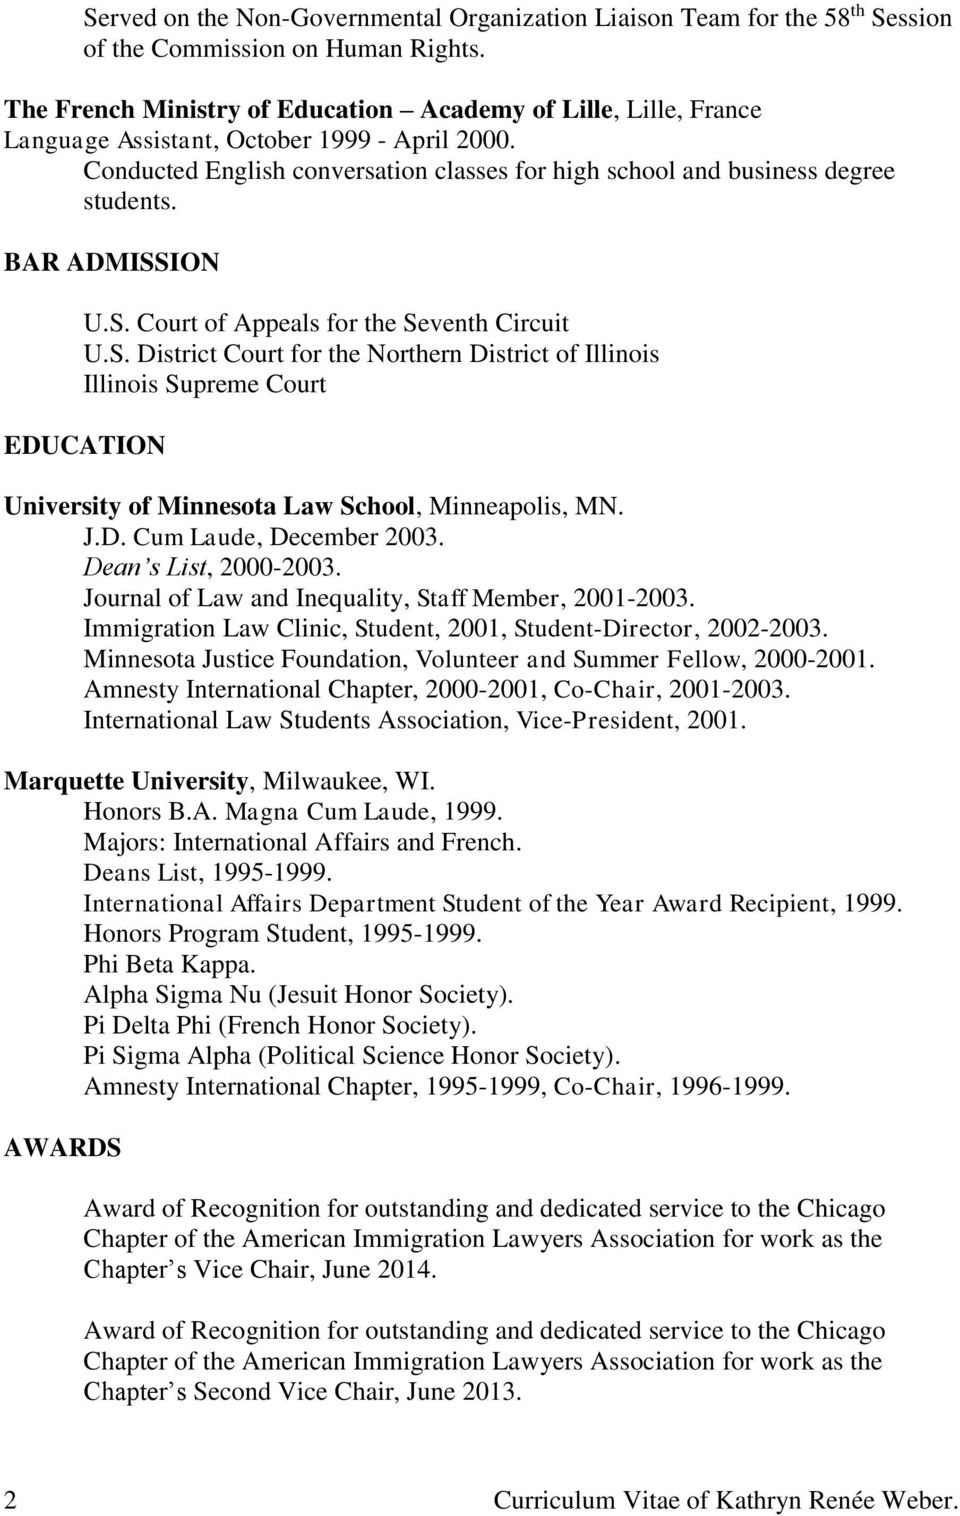 BAR ADMISSION U.S. Court of Appeals for the Seventh Circuit U.S. District Court for the Northern District of Illinois Illinois Supreme Court EDUCATION University of Minnesota Law School, Minneapolis, MN.